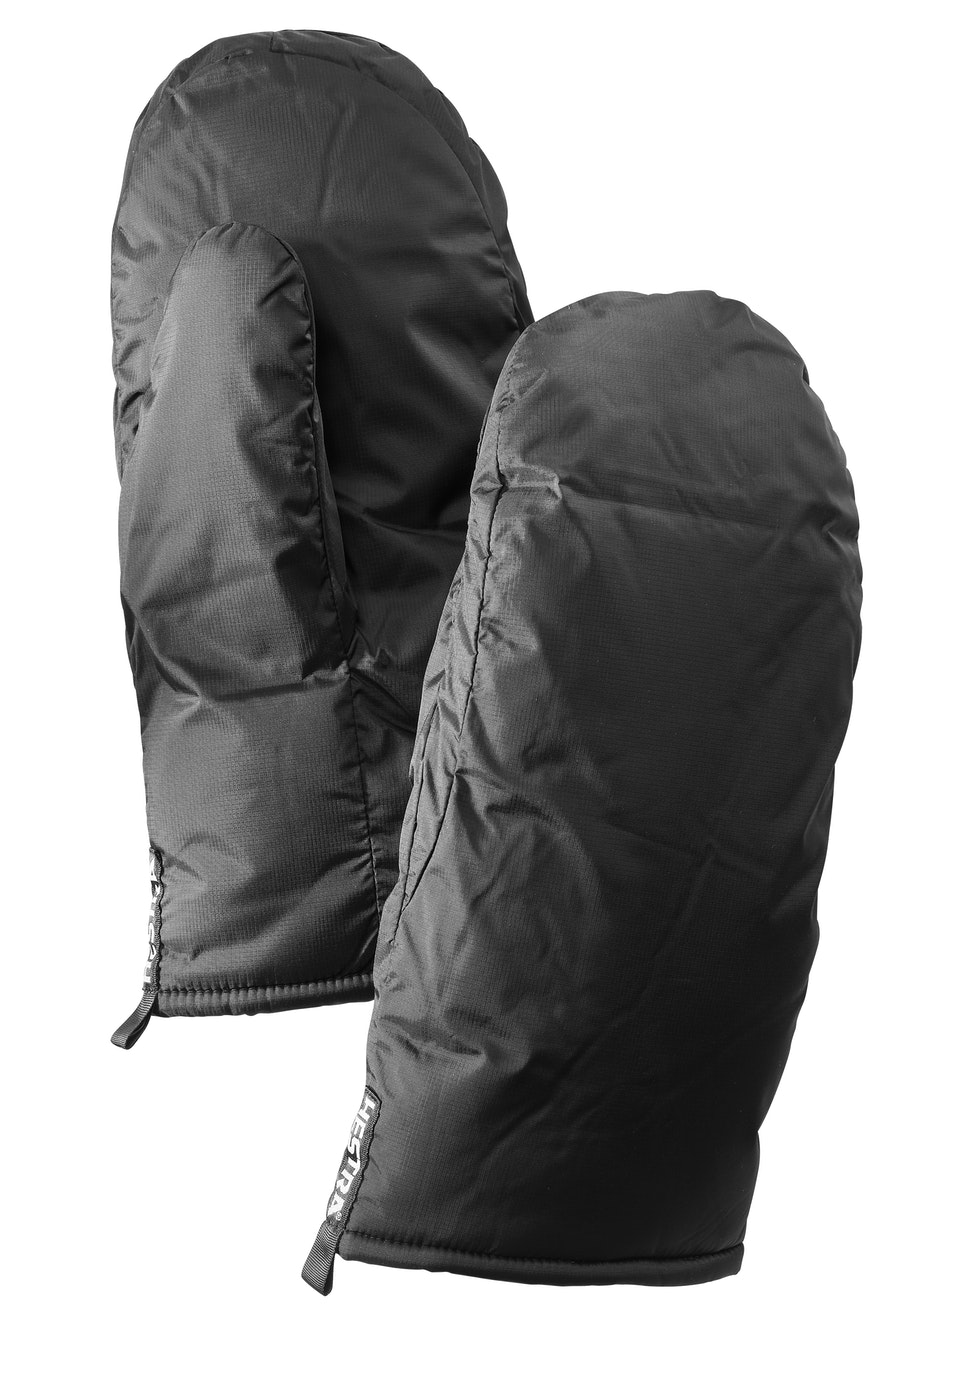 Product image for 34161 Primaloft Extreme Liner